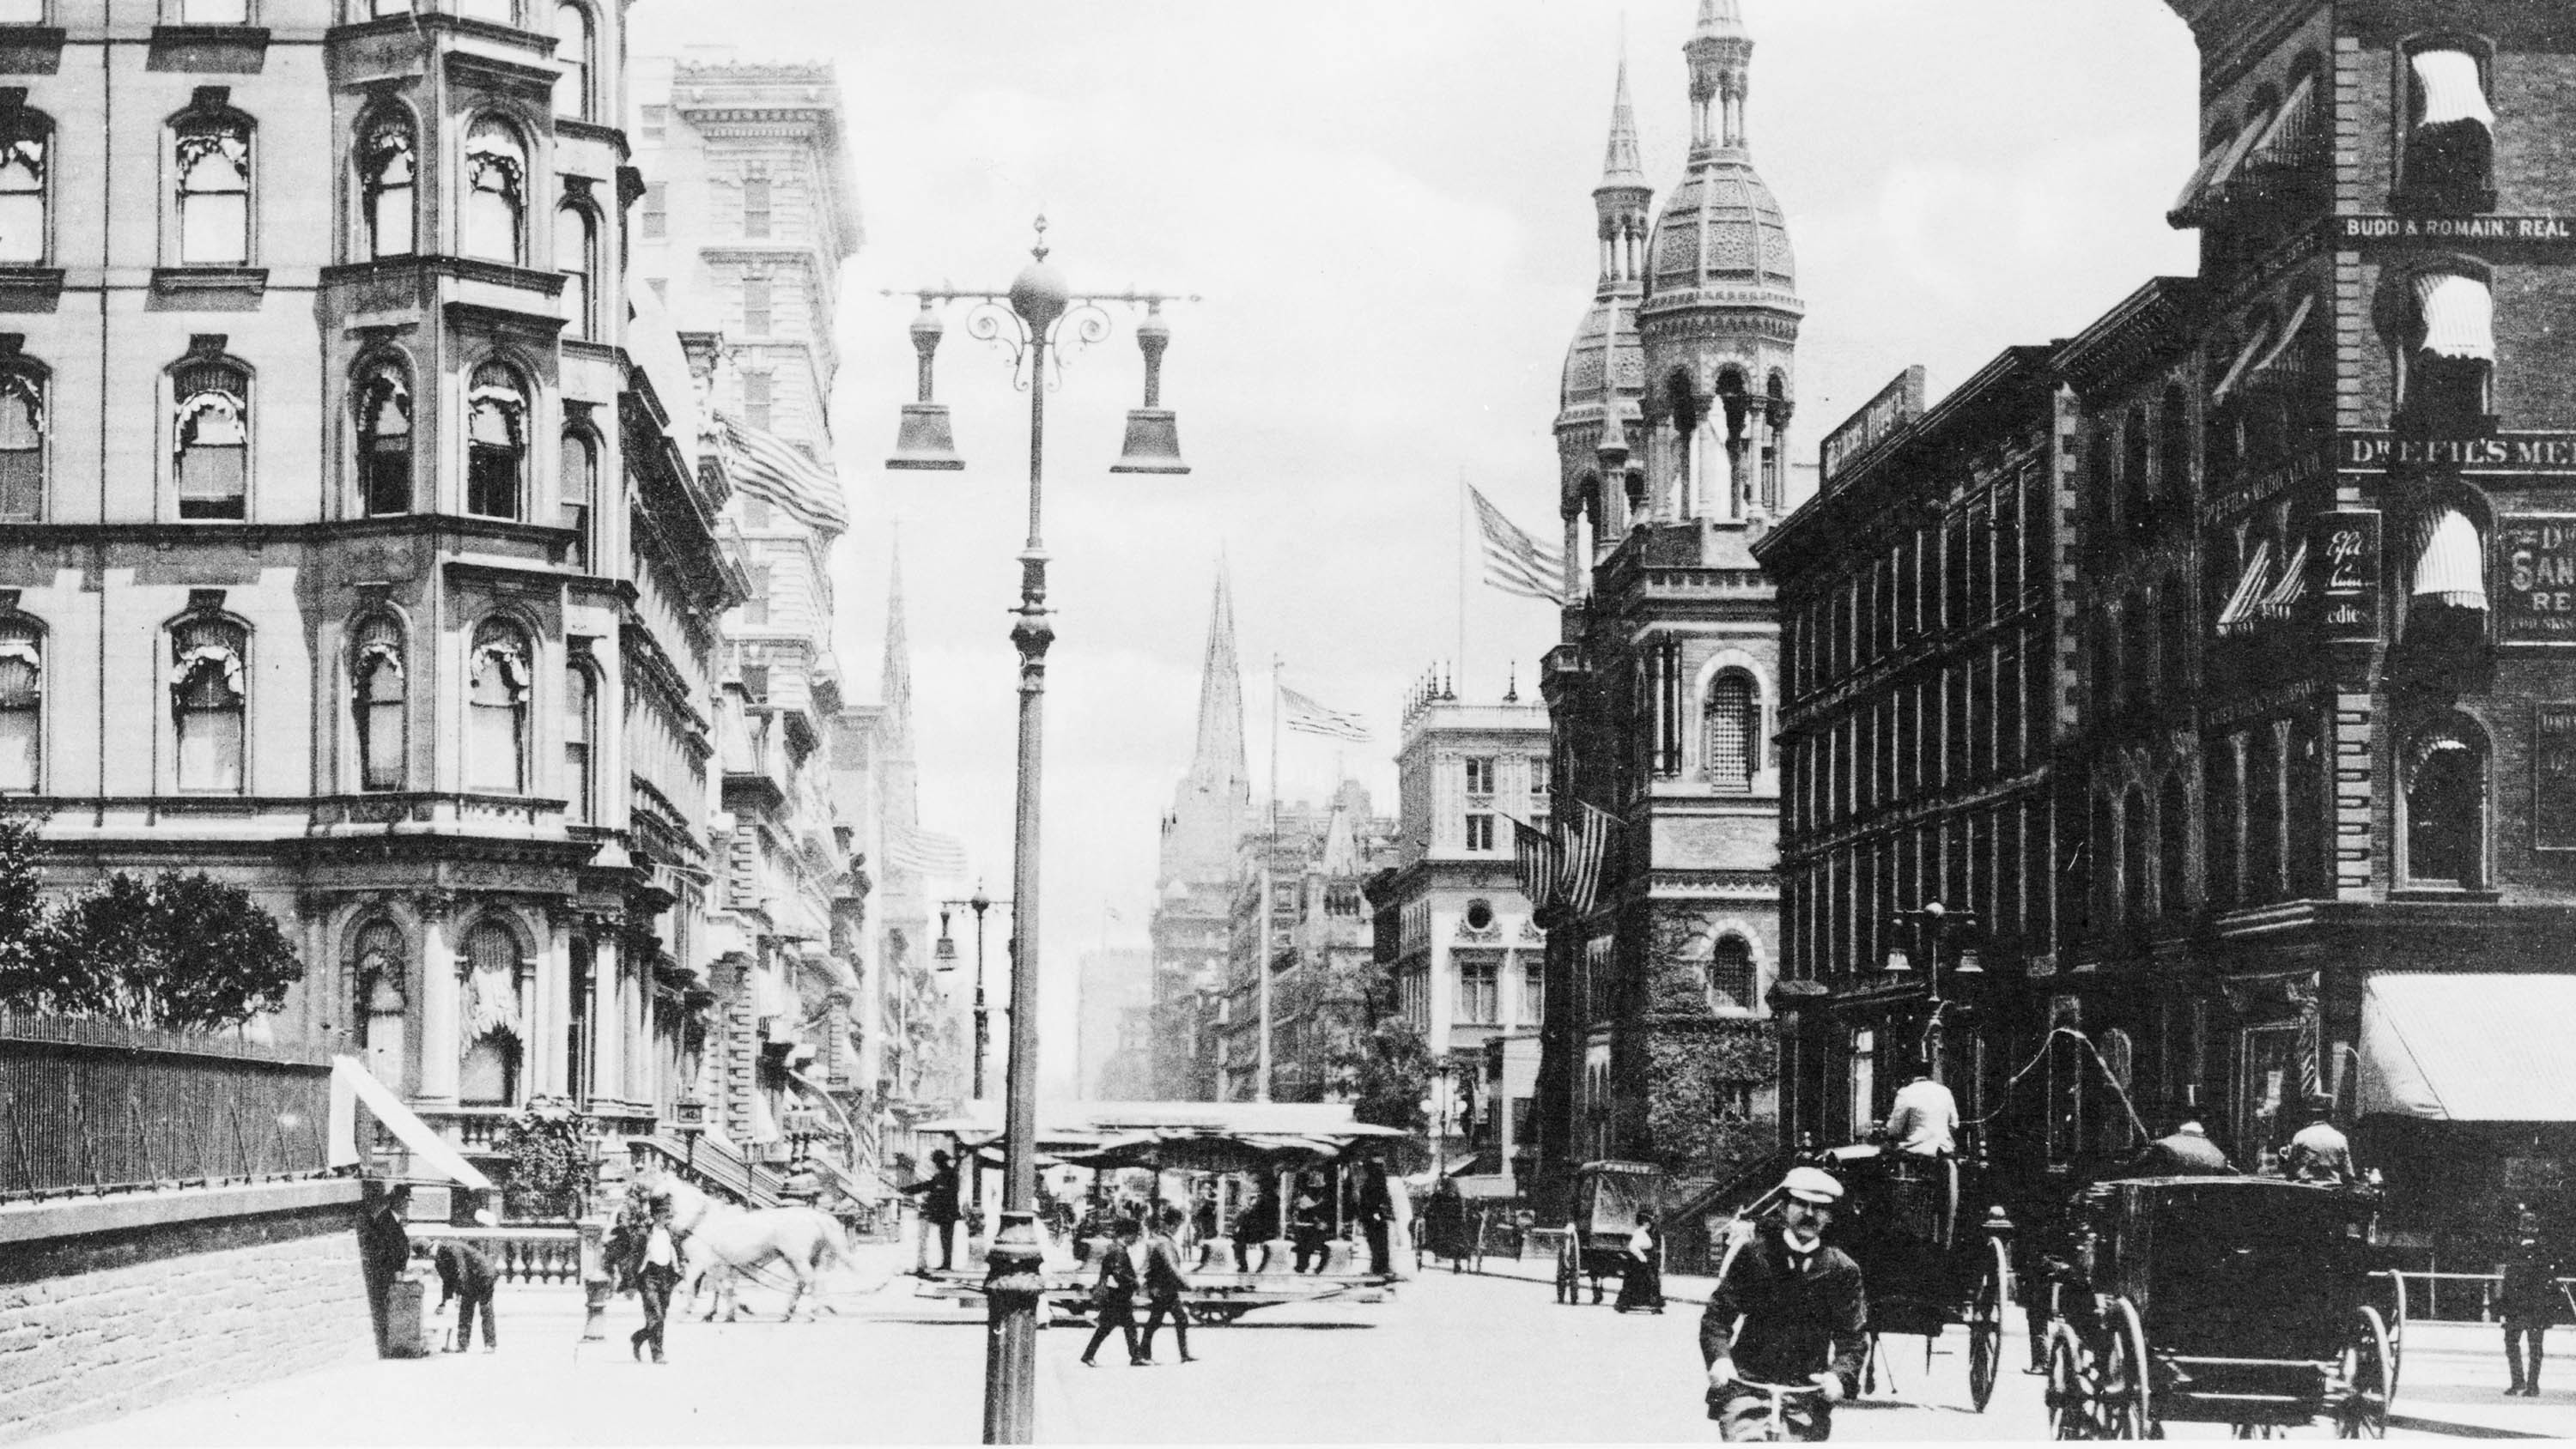 Vintage Photos Of New York City At The Turn Of The Century